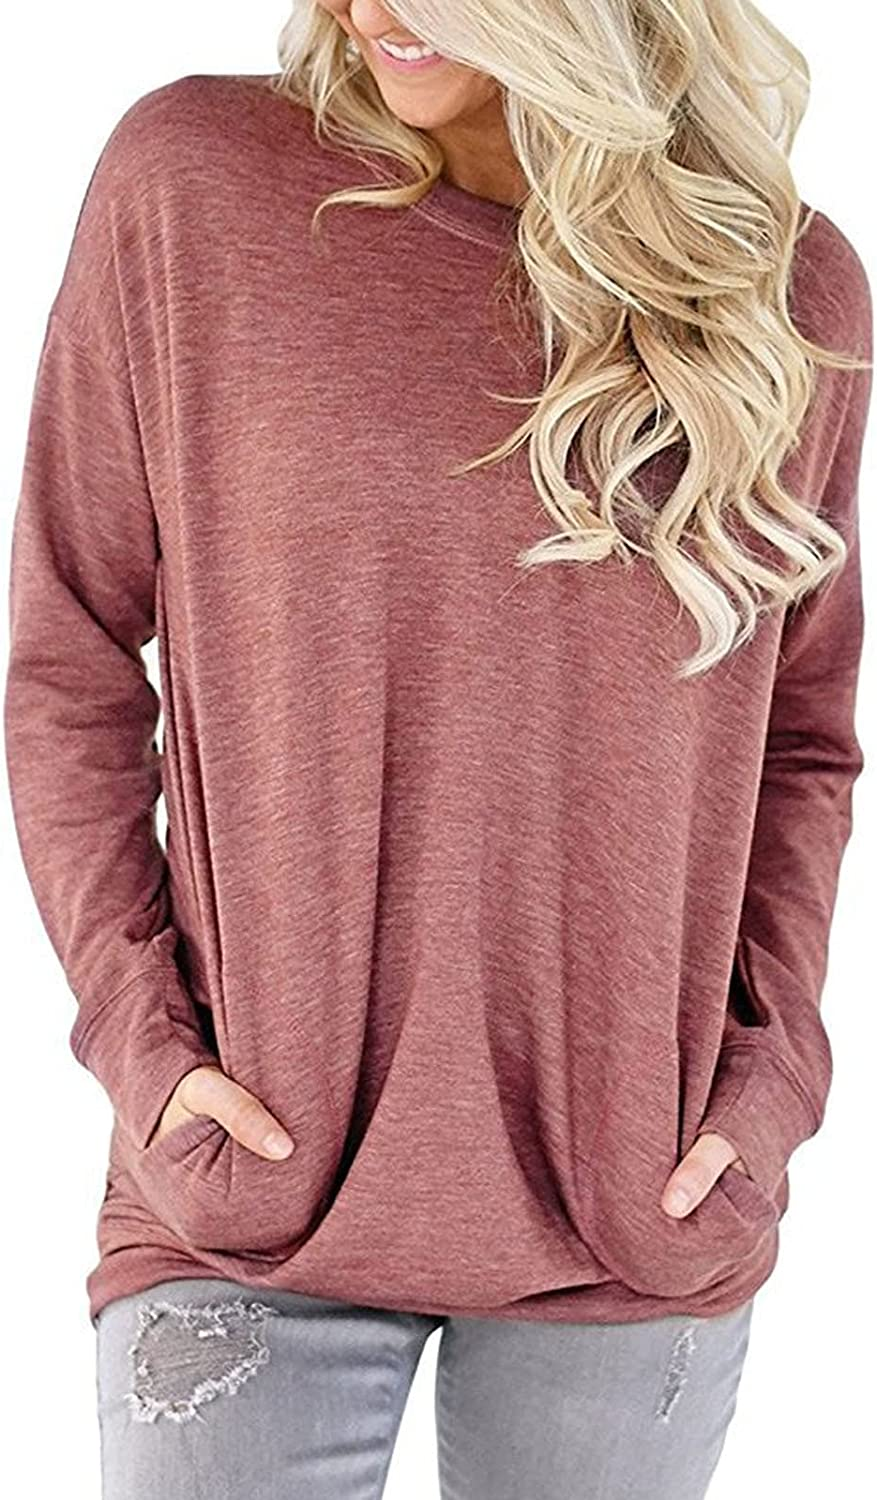 Pullover Tops for Women Casual O-Neck Long Sleeve T-Shirt Solid Tunic Tshirt Loose Fit Blouse Tops with Pockets